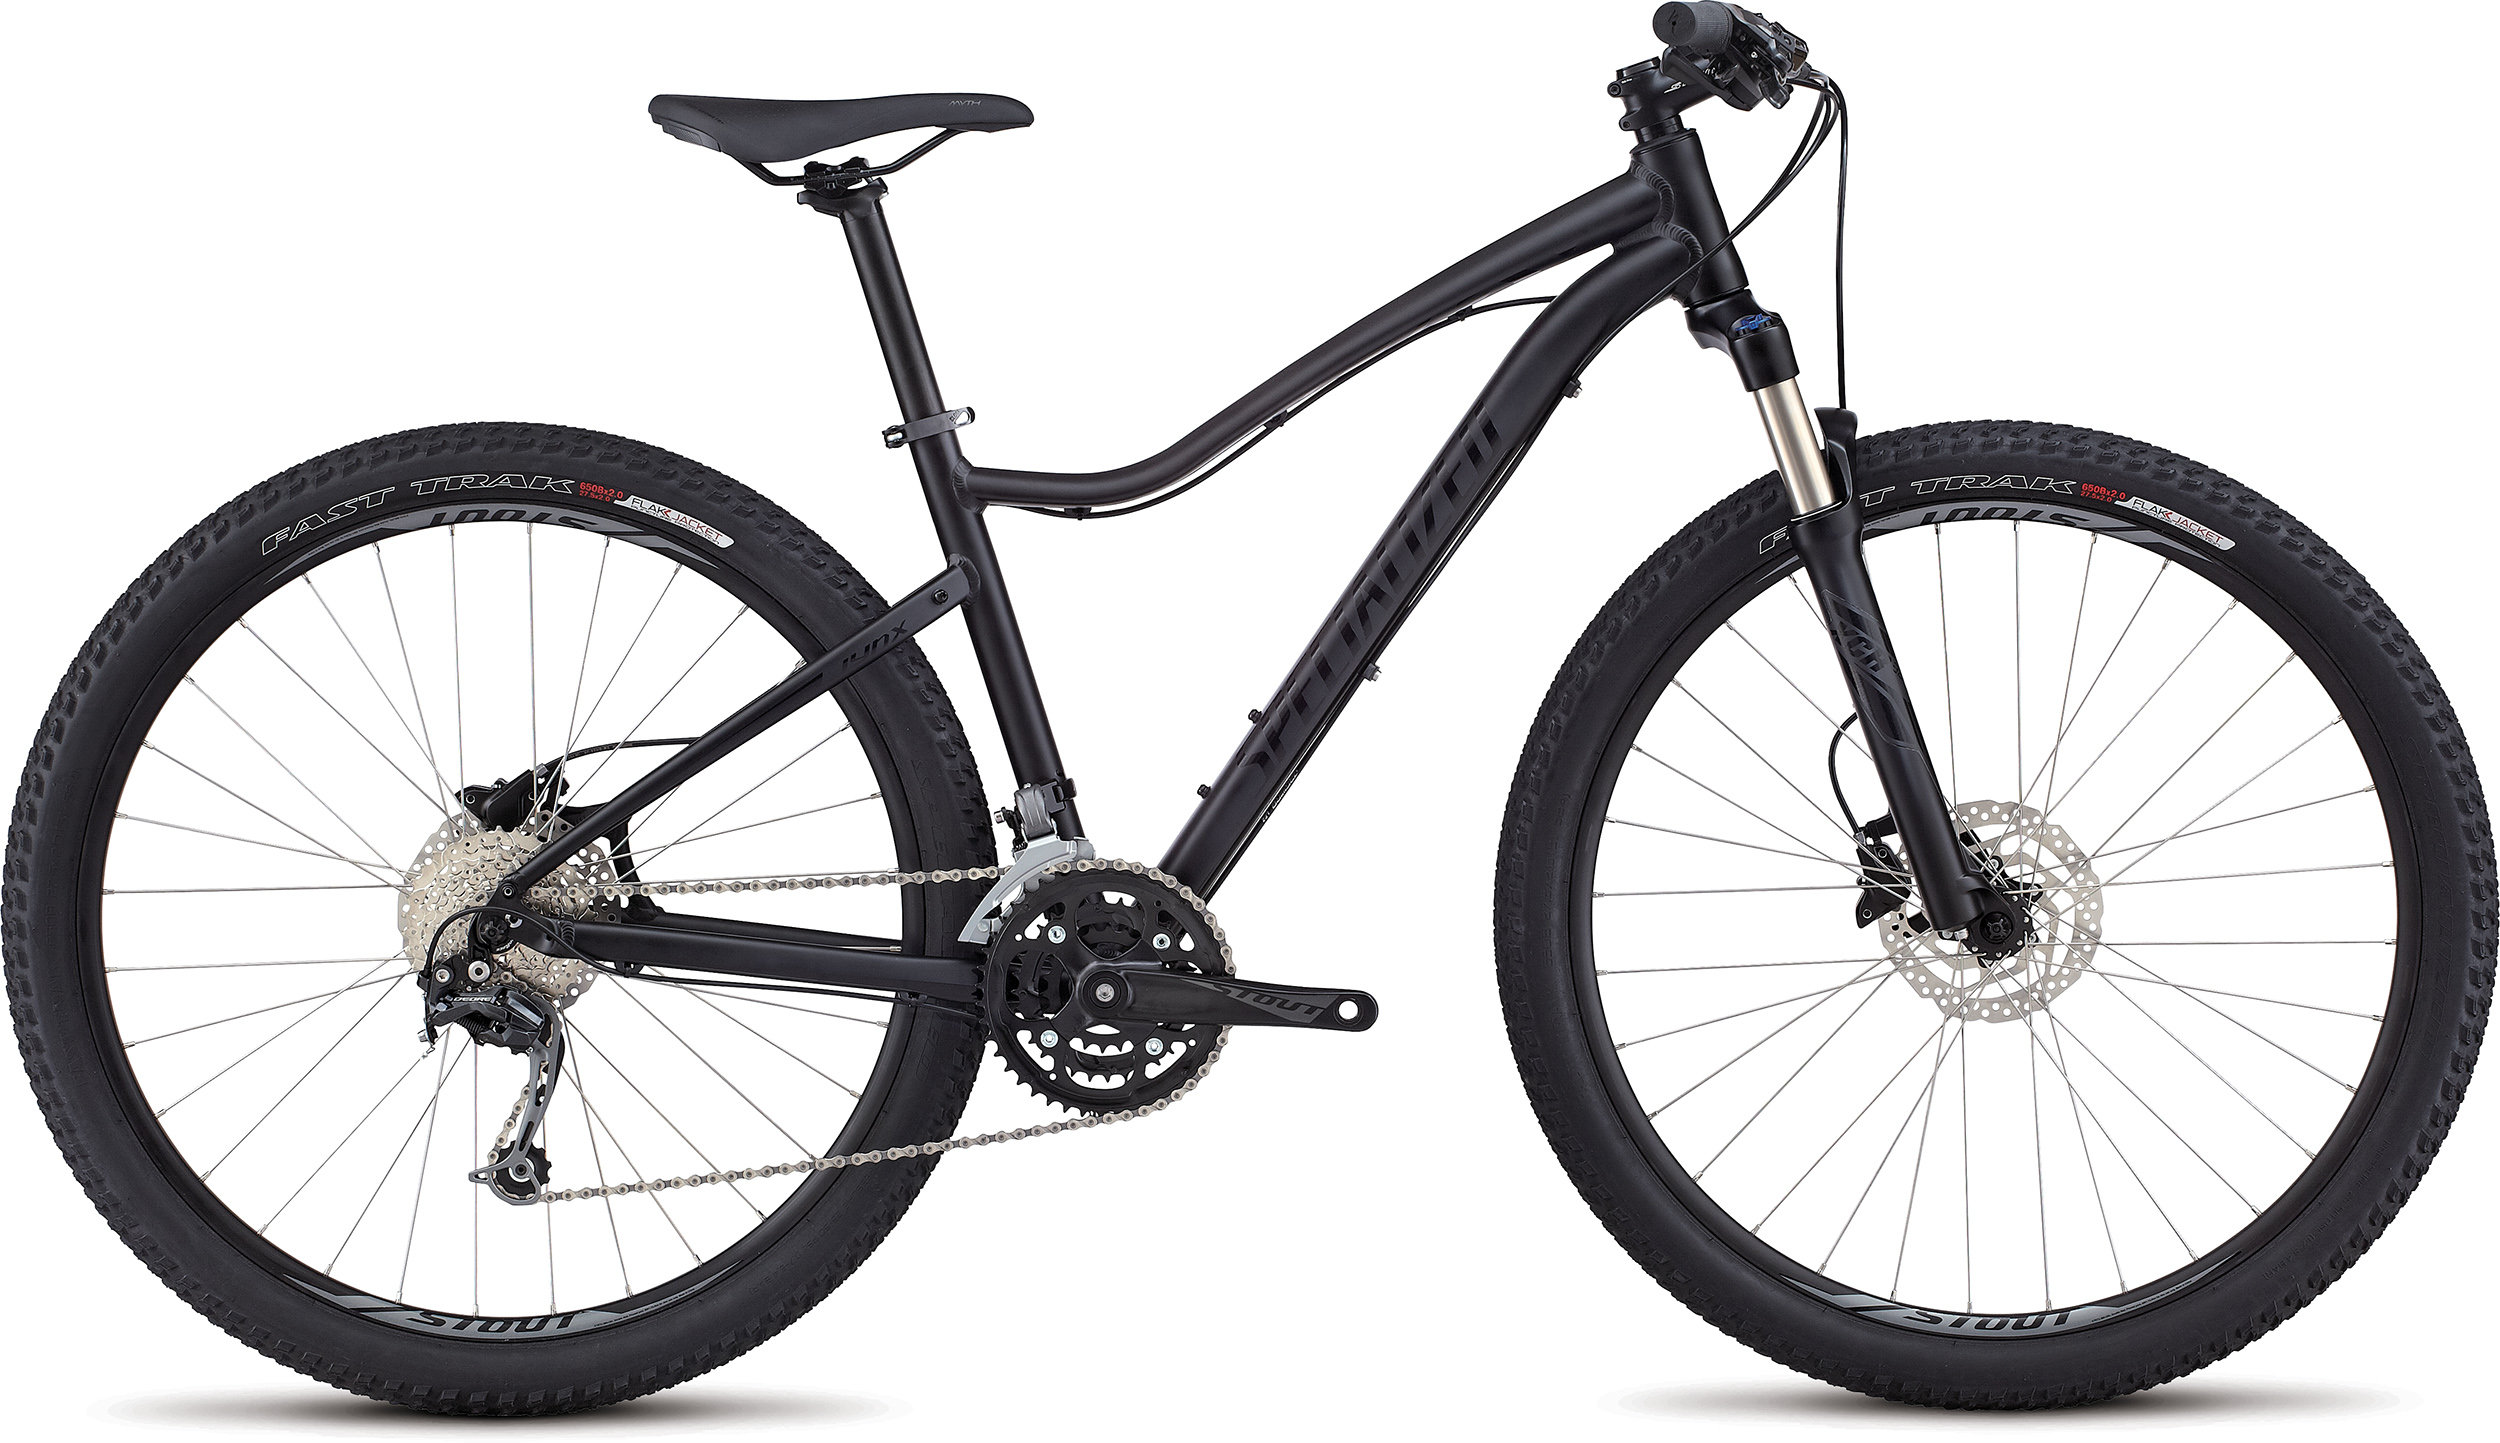 SPECIALIZED JYNX COMP 650B TARBLK/BLK L - Bike Zone